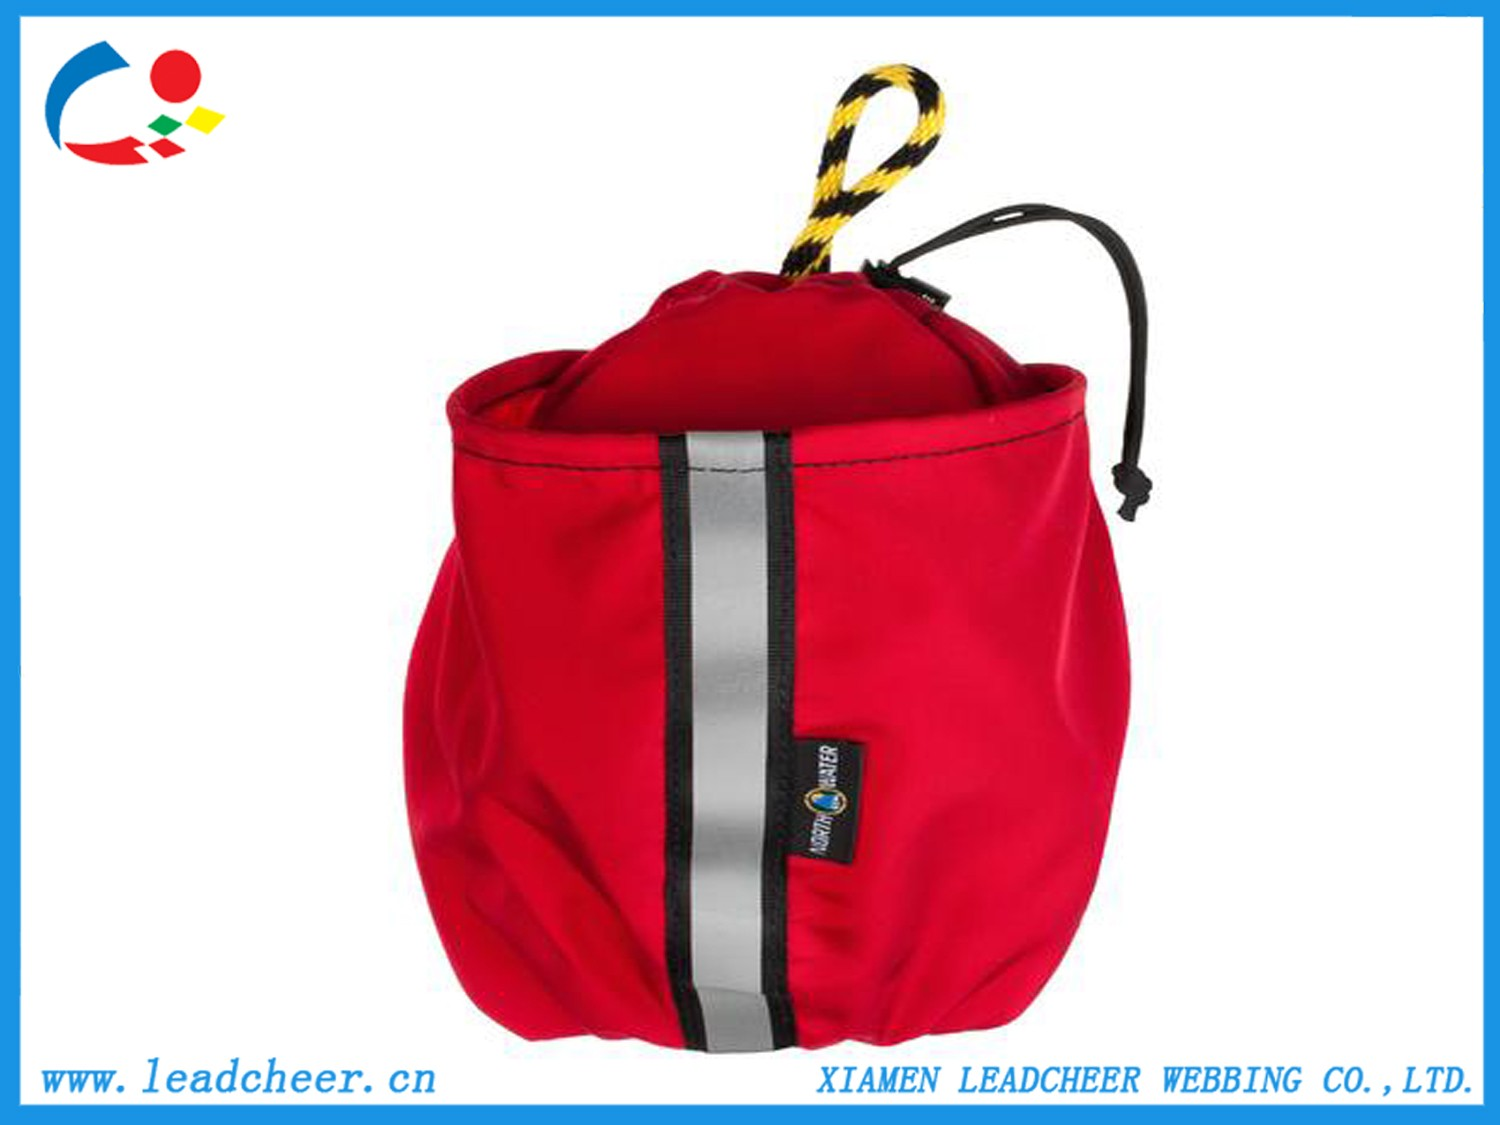 High quality China Factory hot sale new design rescue bag for safety equipment Quotes,China China Factory hot sale new design rescue bag for safety equipment Factory,China Factory hot sale new design rescue bag for safety equipment Purchasing